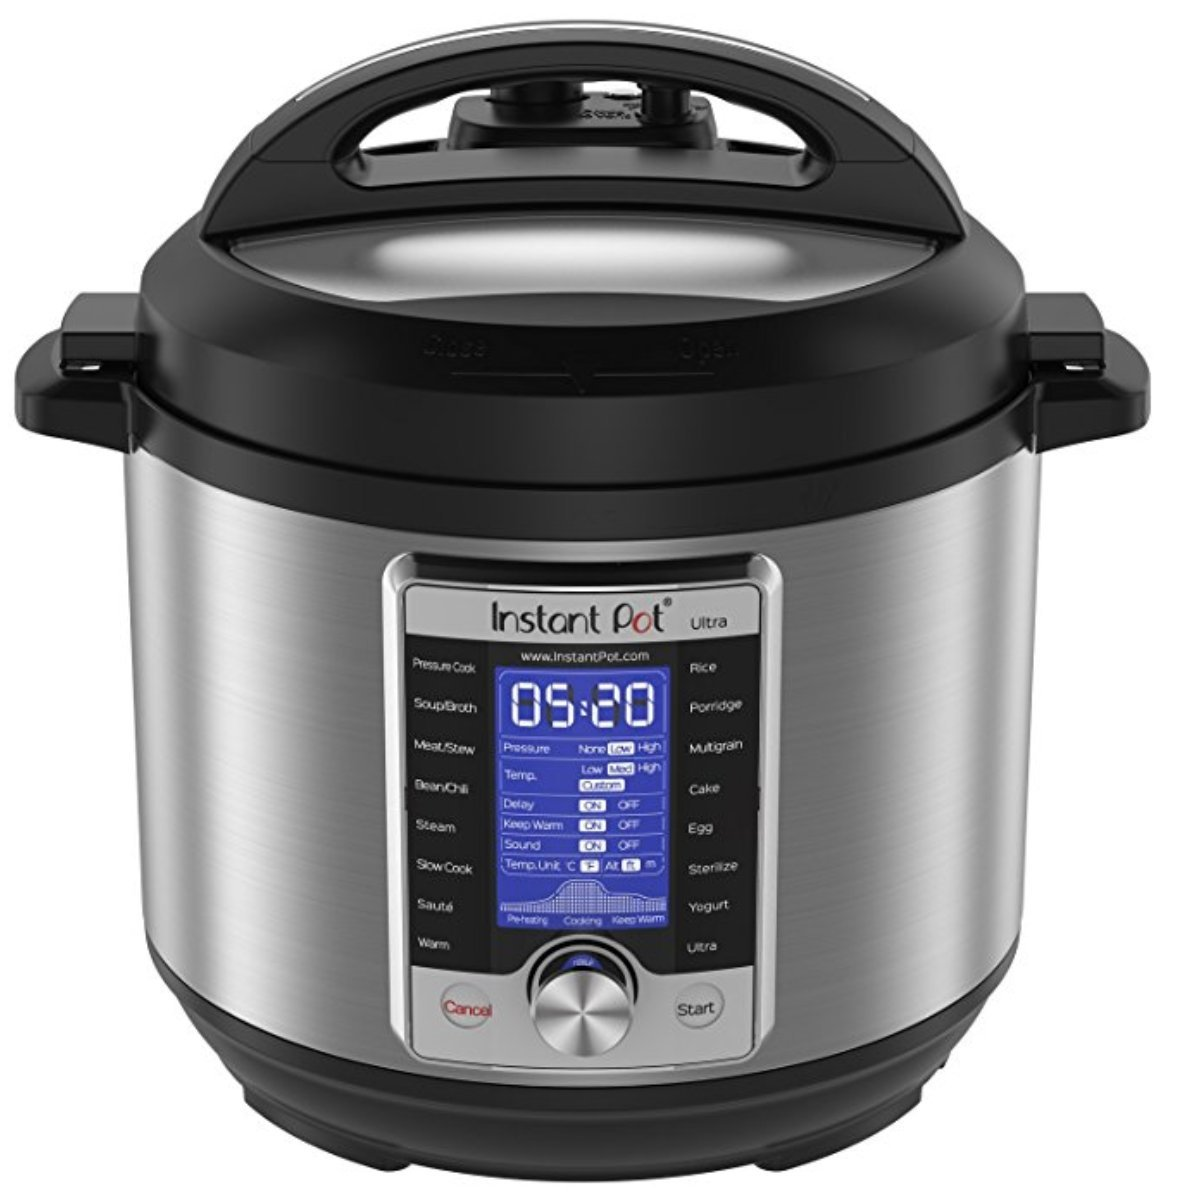 NEWEST Model Instant Pot Ultra 6 Qt 10-in-1 Multi-Use Programmable Pressure Cooker, Slow Cooker, Rice Cooker, Yogurt Maker, Cake Maker, Egg Cooker, Sauté, Steamer, Warmer, and Sterilizer